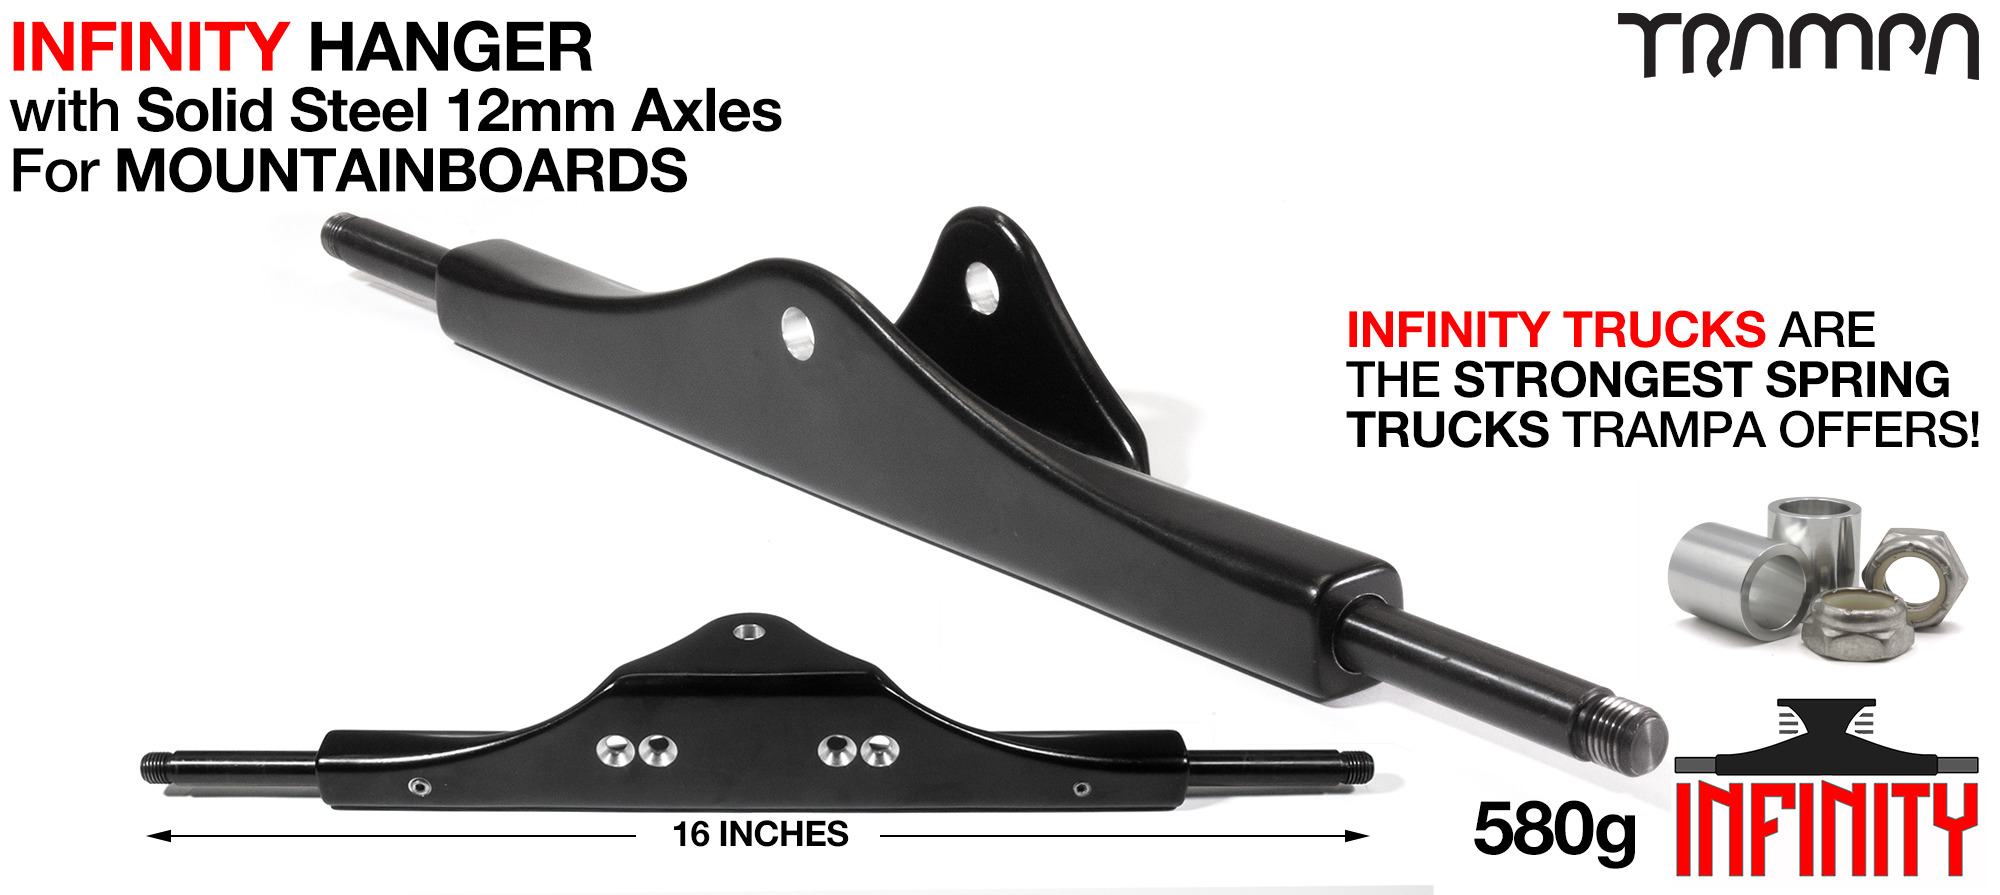 INFINITY ATB Hanger - 12mm SOLID Axles Painted Black & CNC'd Kingpin hole